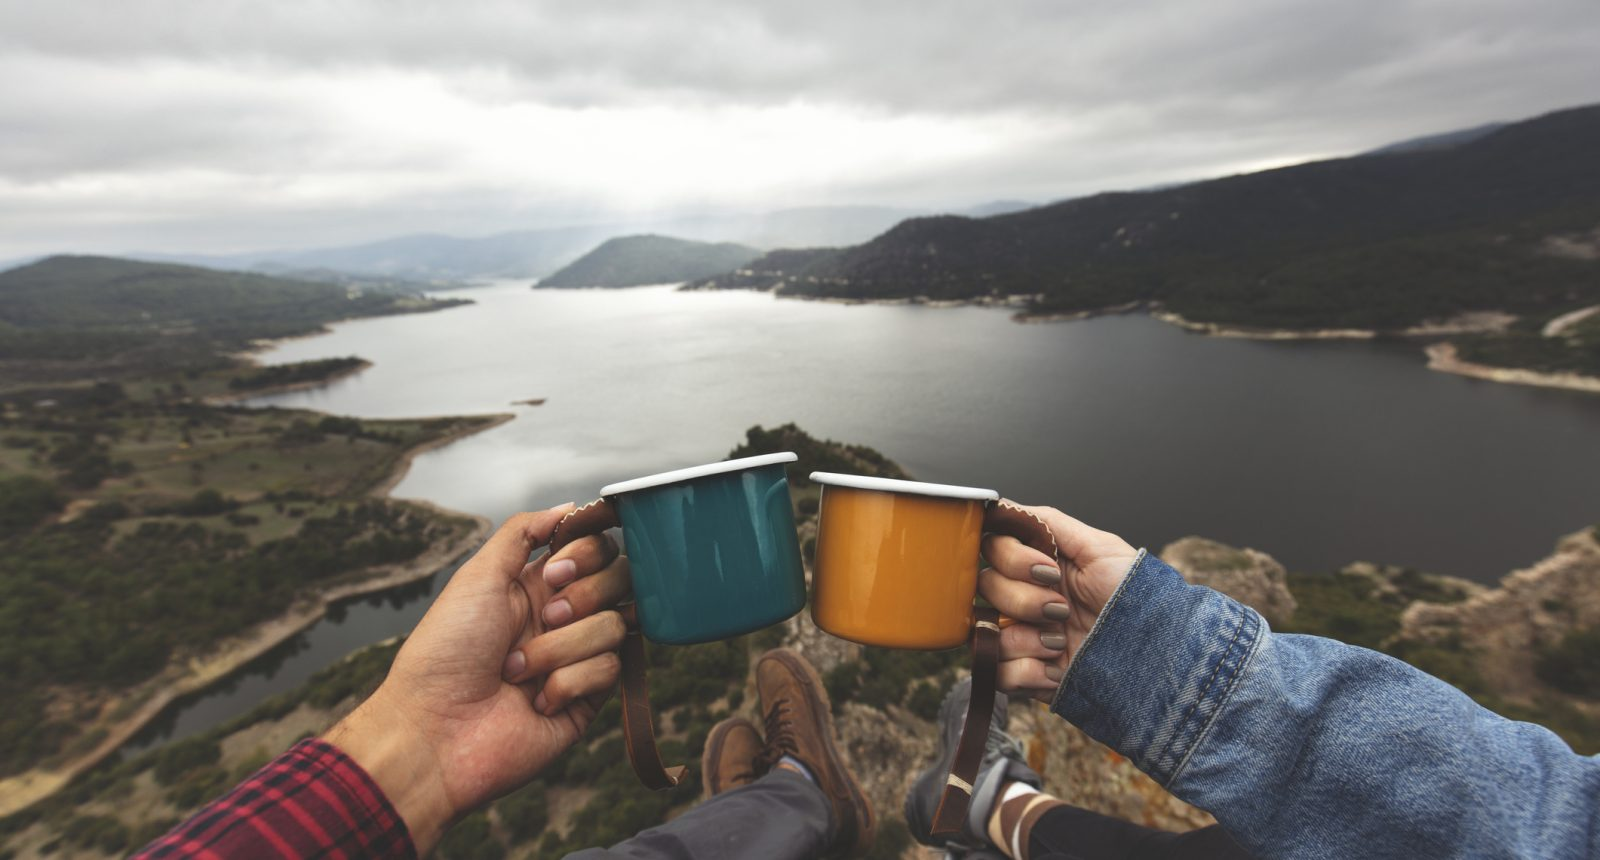 Pov image of couple holding cups on mountain peak